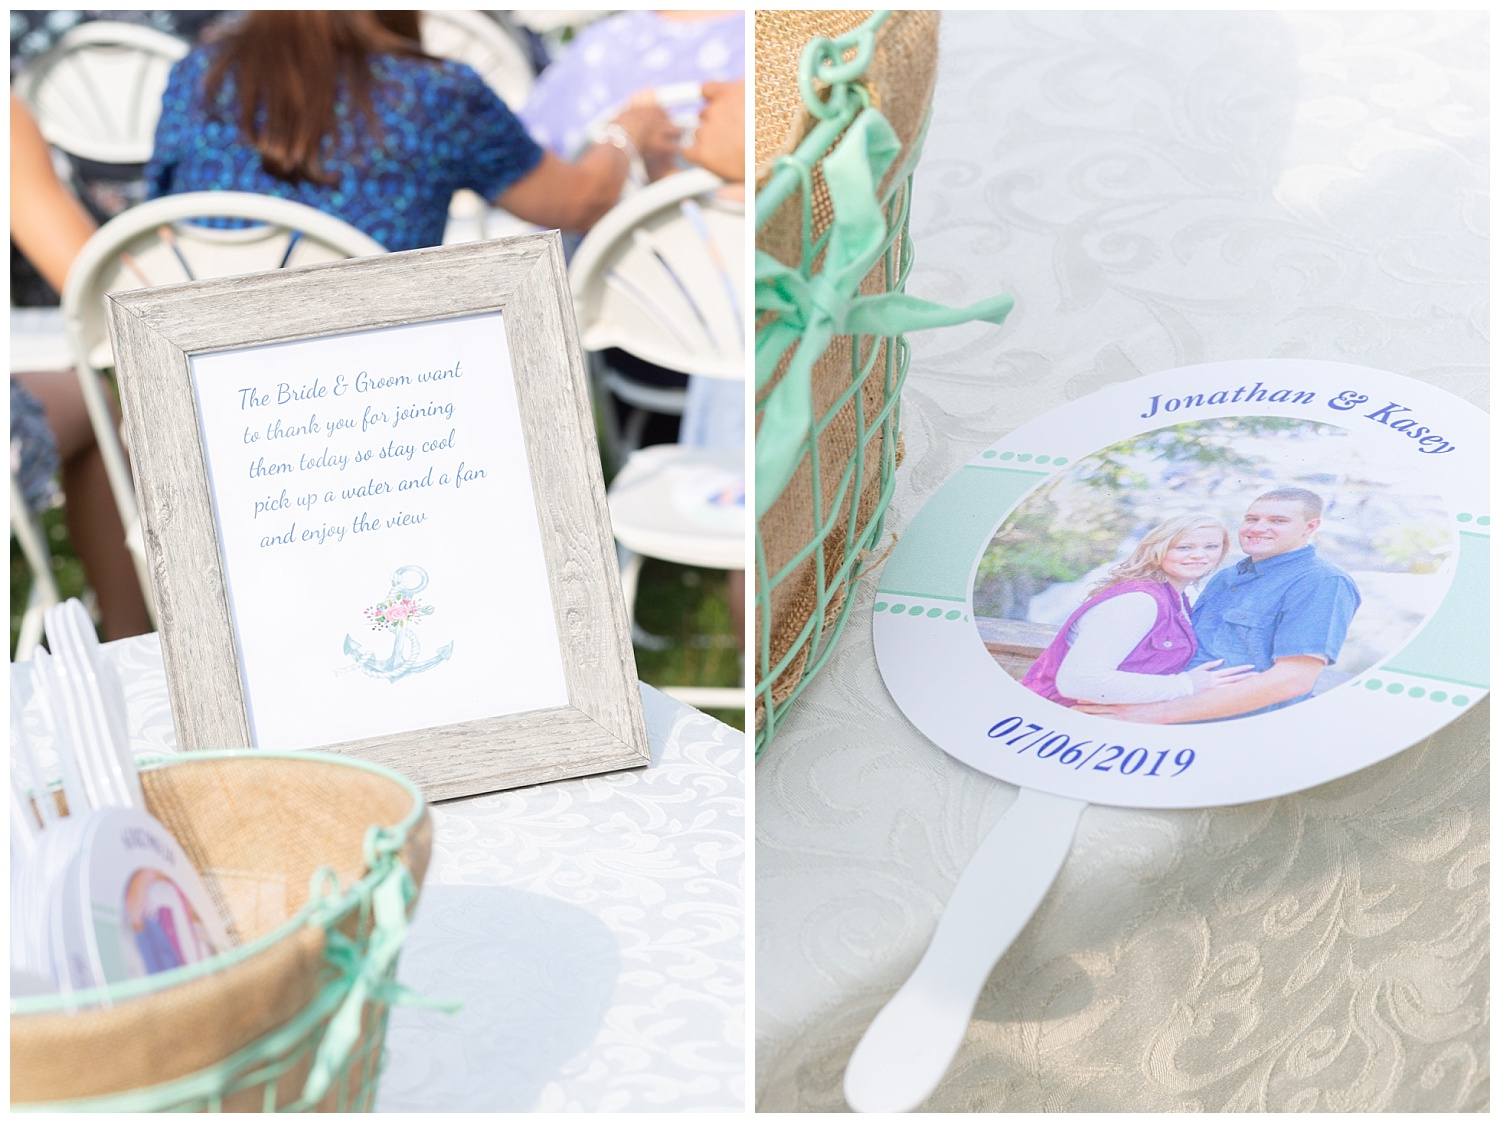 For the ceremony the couple gave out the cutest fans for their guests to stay cool